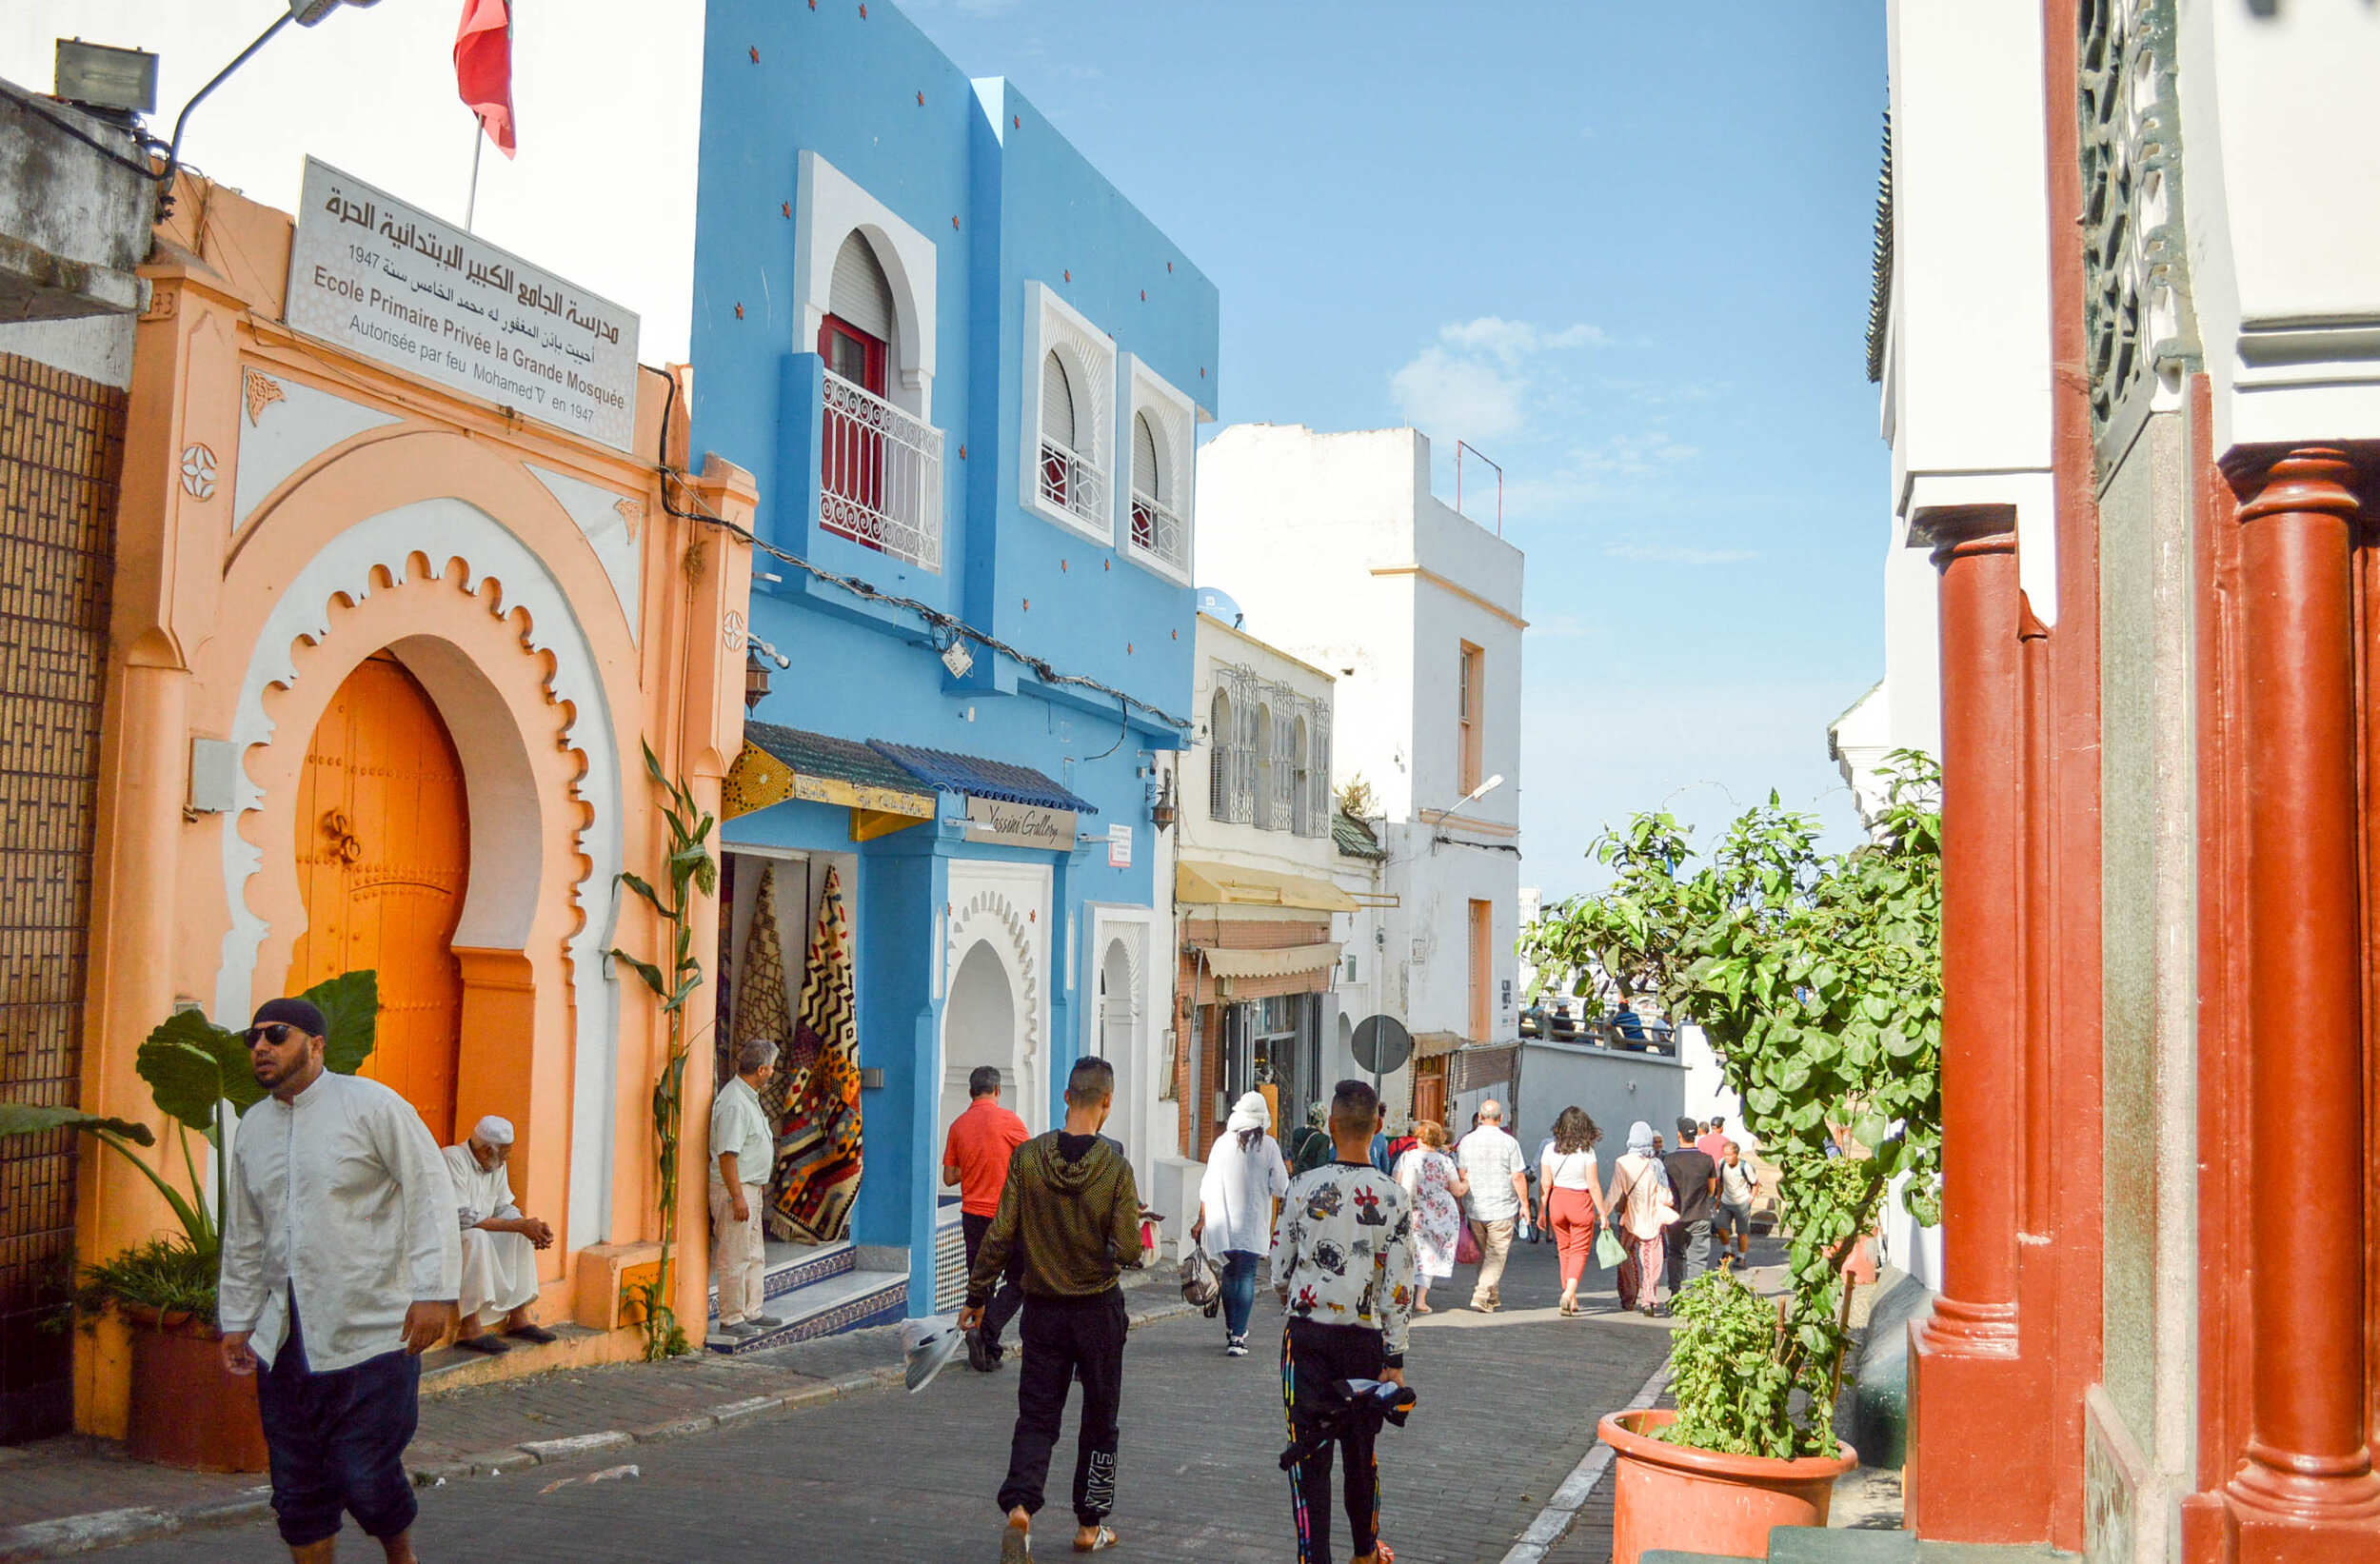 How to Take a Morocco Day Trip from Seville, Spain! Traveling to Morocco's northern coastal town of Tangier is just a short ferry ride from Southern Spain. Here's how we did our day trip, plus advice and tips for you! goseekexplore.com